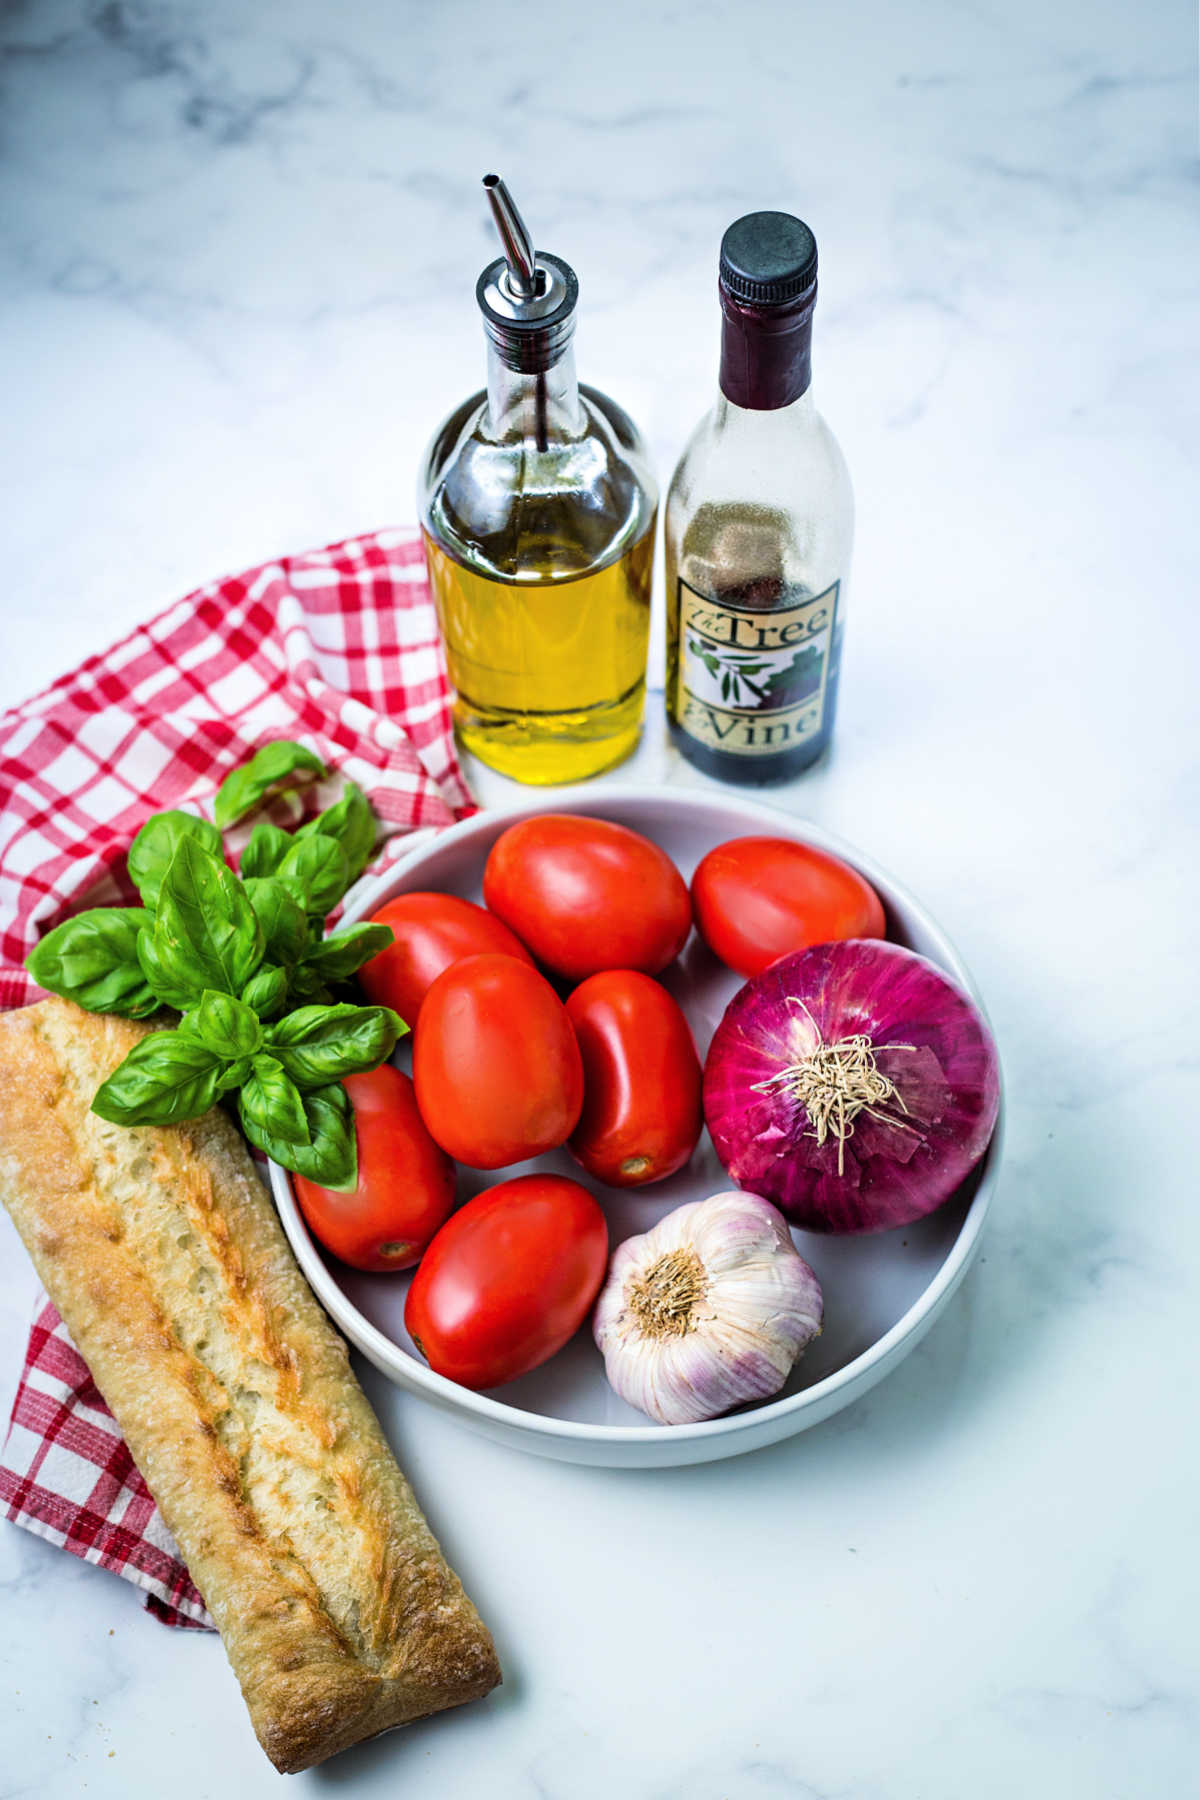 ingredients for bruschetta on a kitchen counter: roma tomatoes, basil, garlic, red onion, olive oil, and balsamic vinegar.